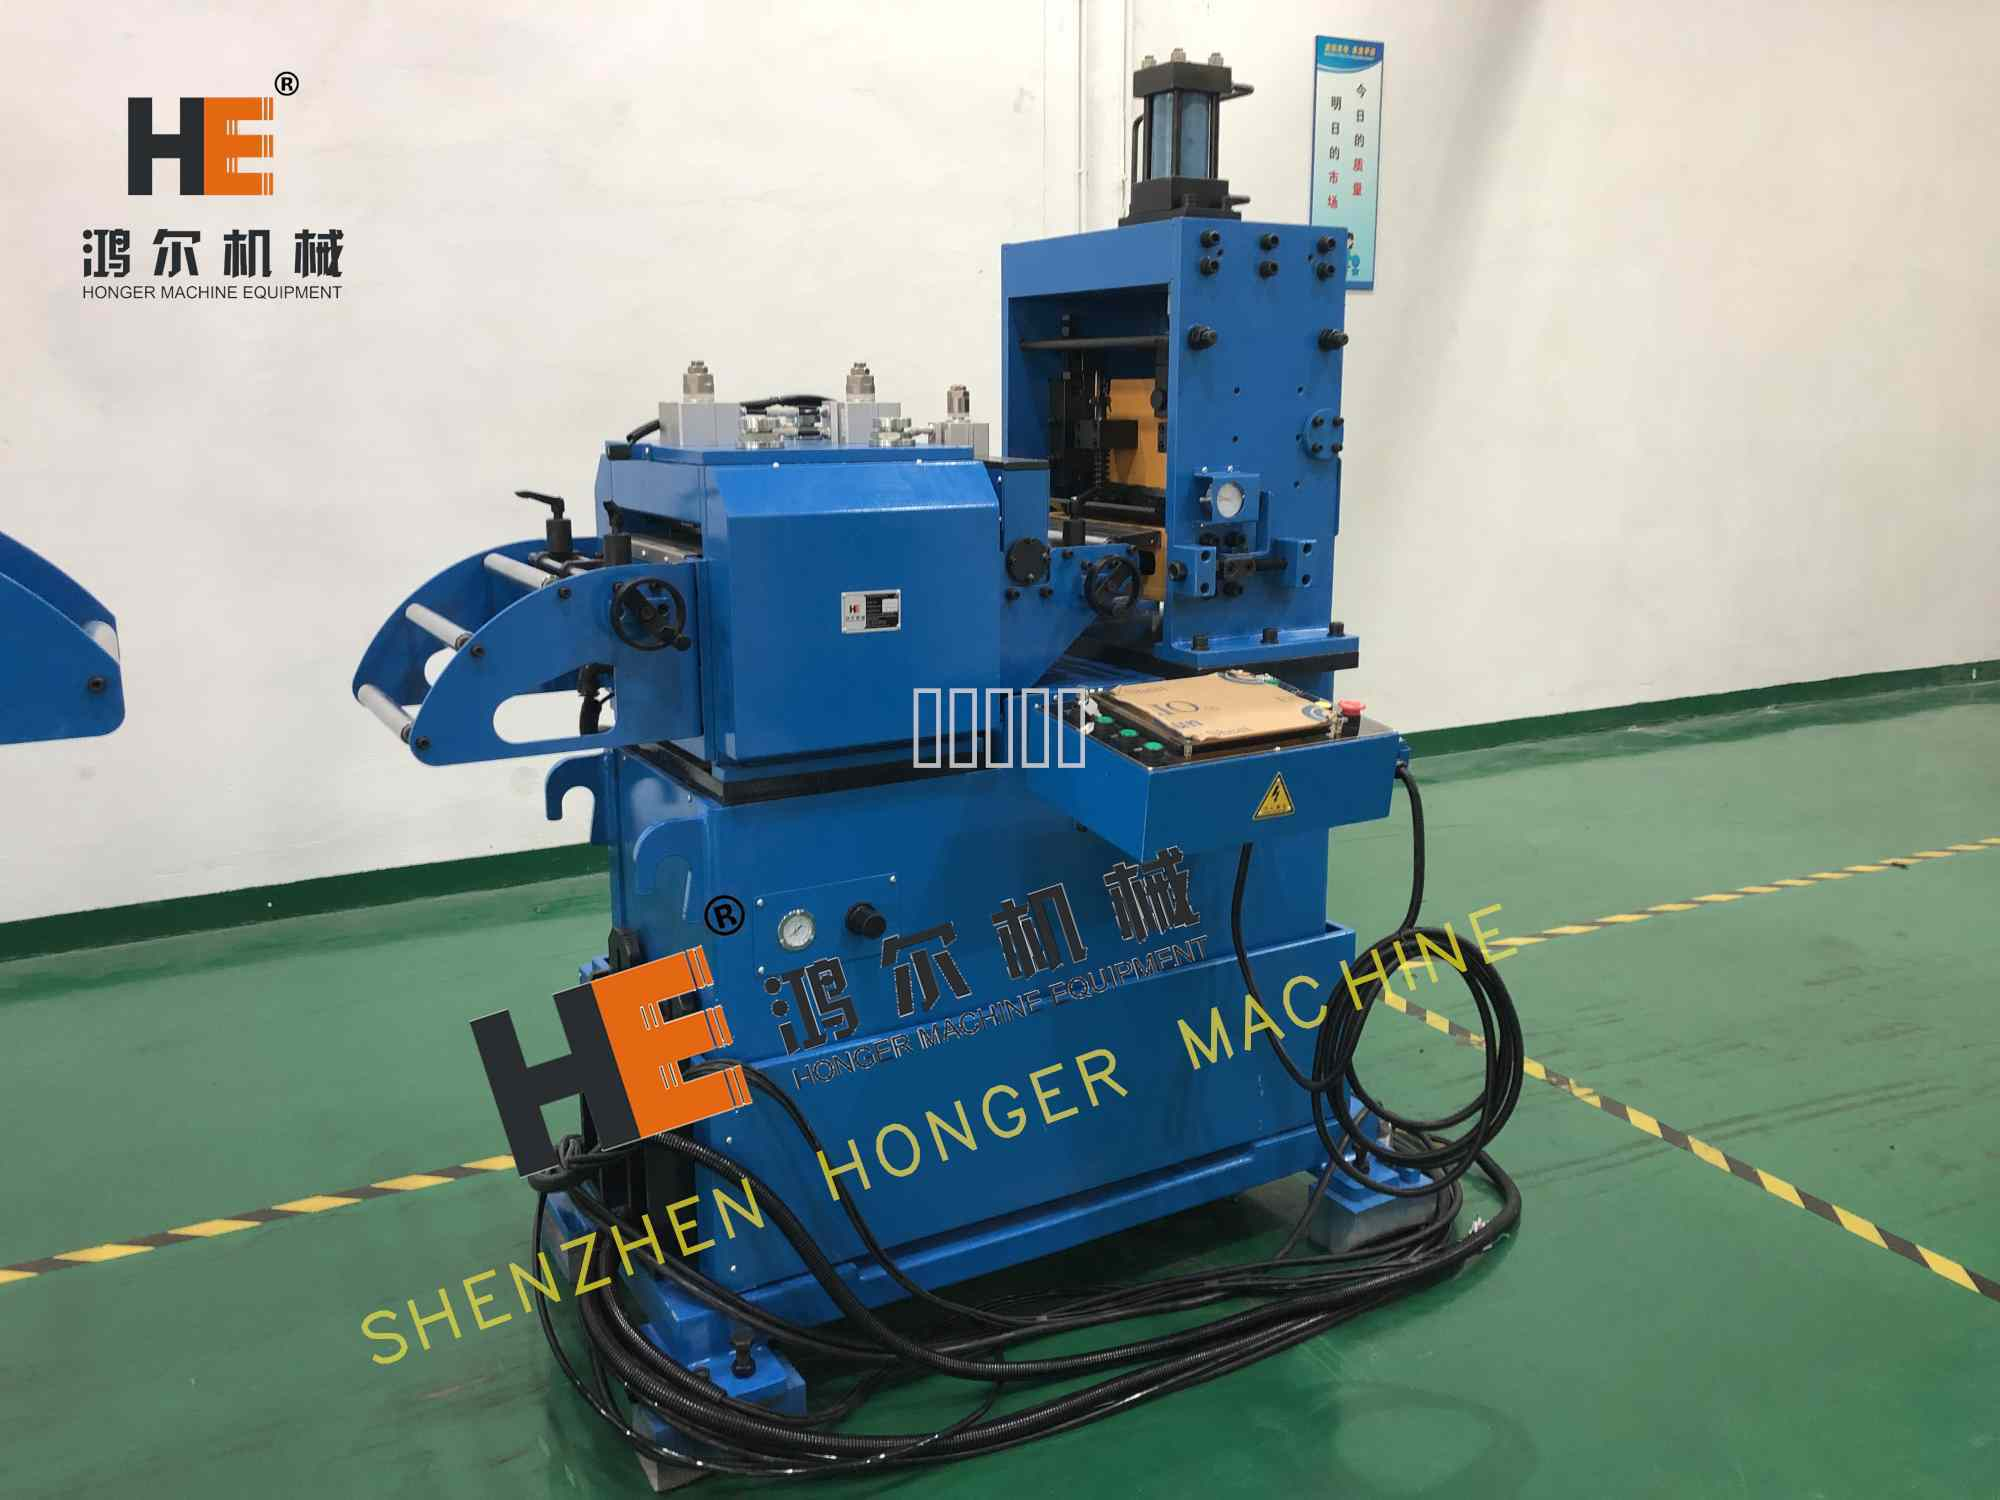 coil feeder machine with shearing for cutting